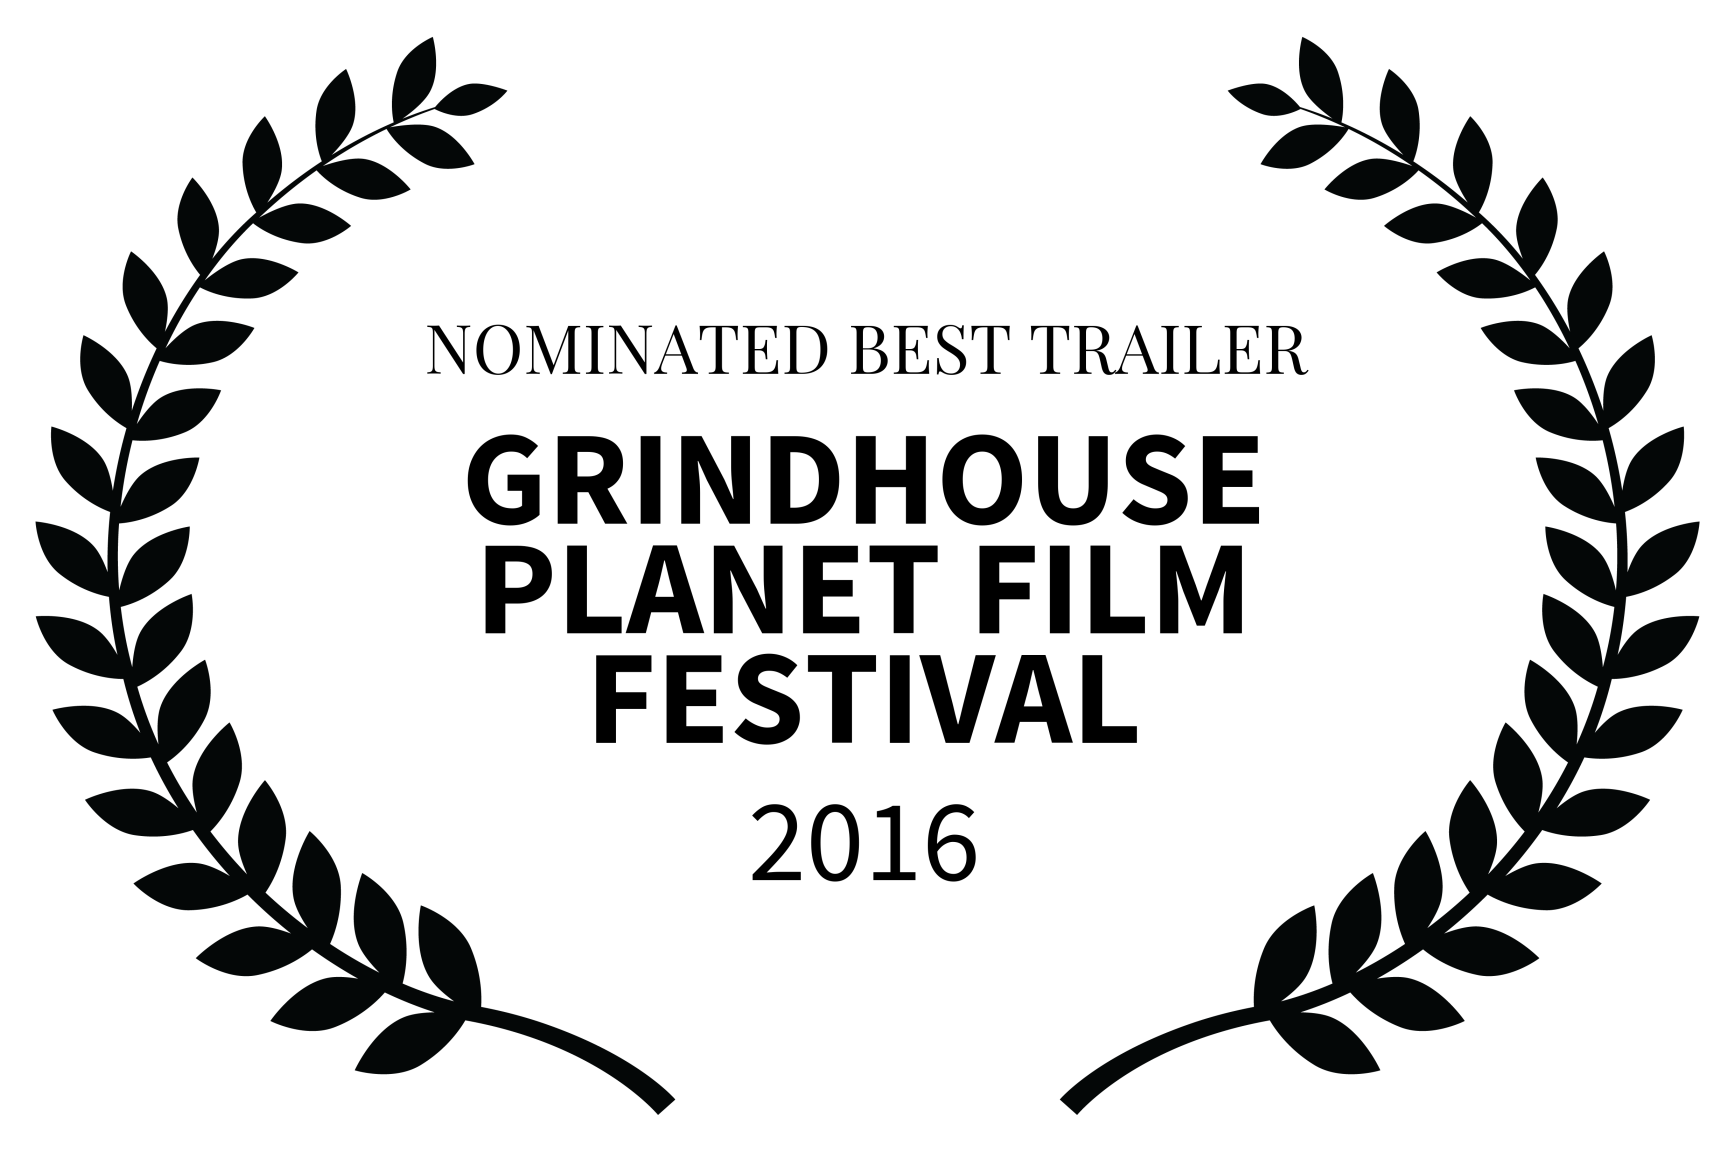 NOMINATED BEST TRAILER - GRINDHOUSE PLANET FILM FESTIVAL - 2016-2.png